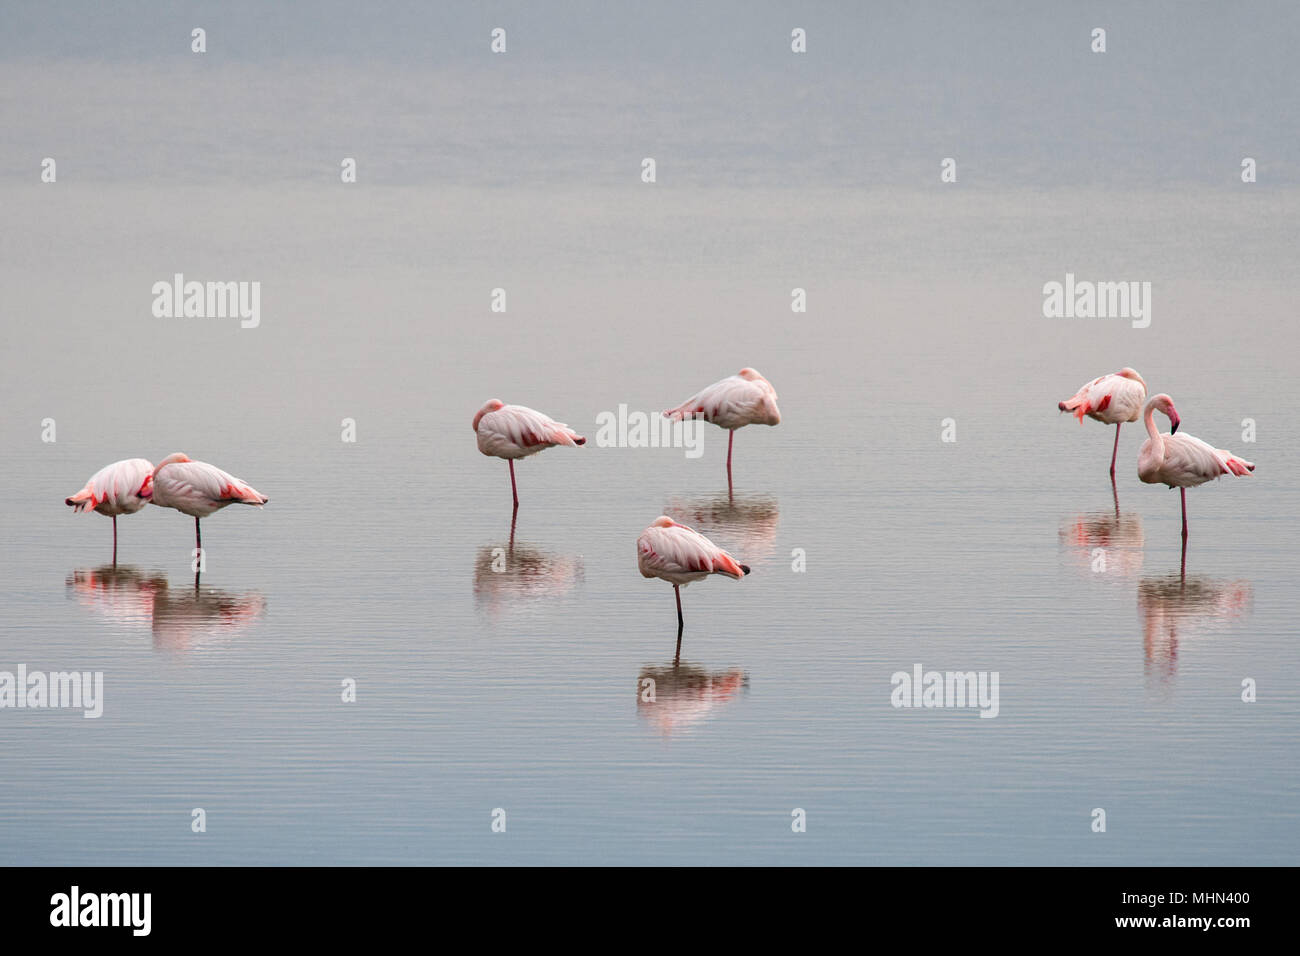 water reflection and beautiful light on pink flamingo group - Stock Image